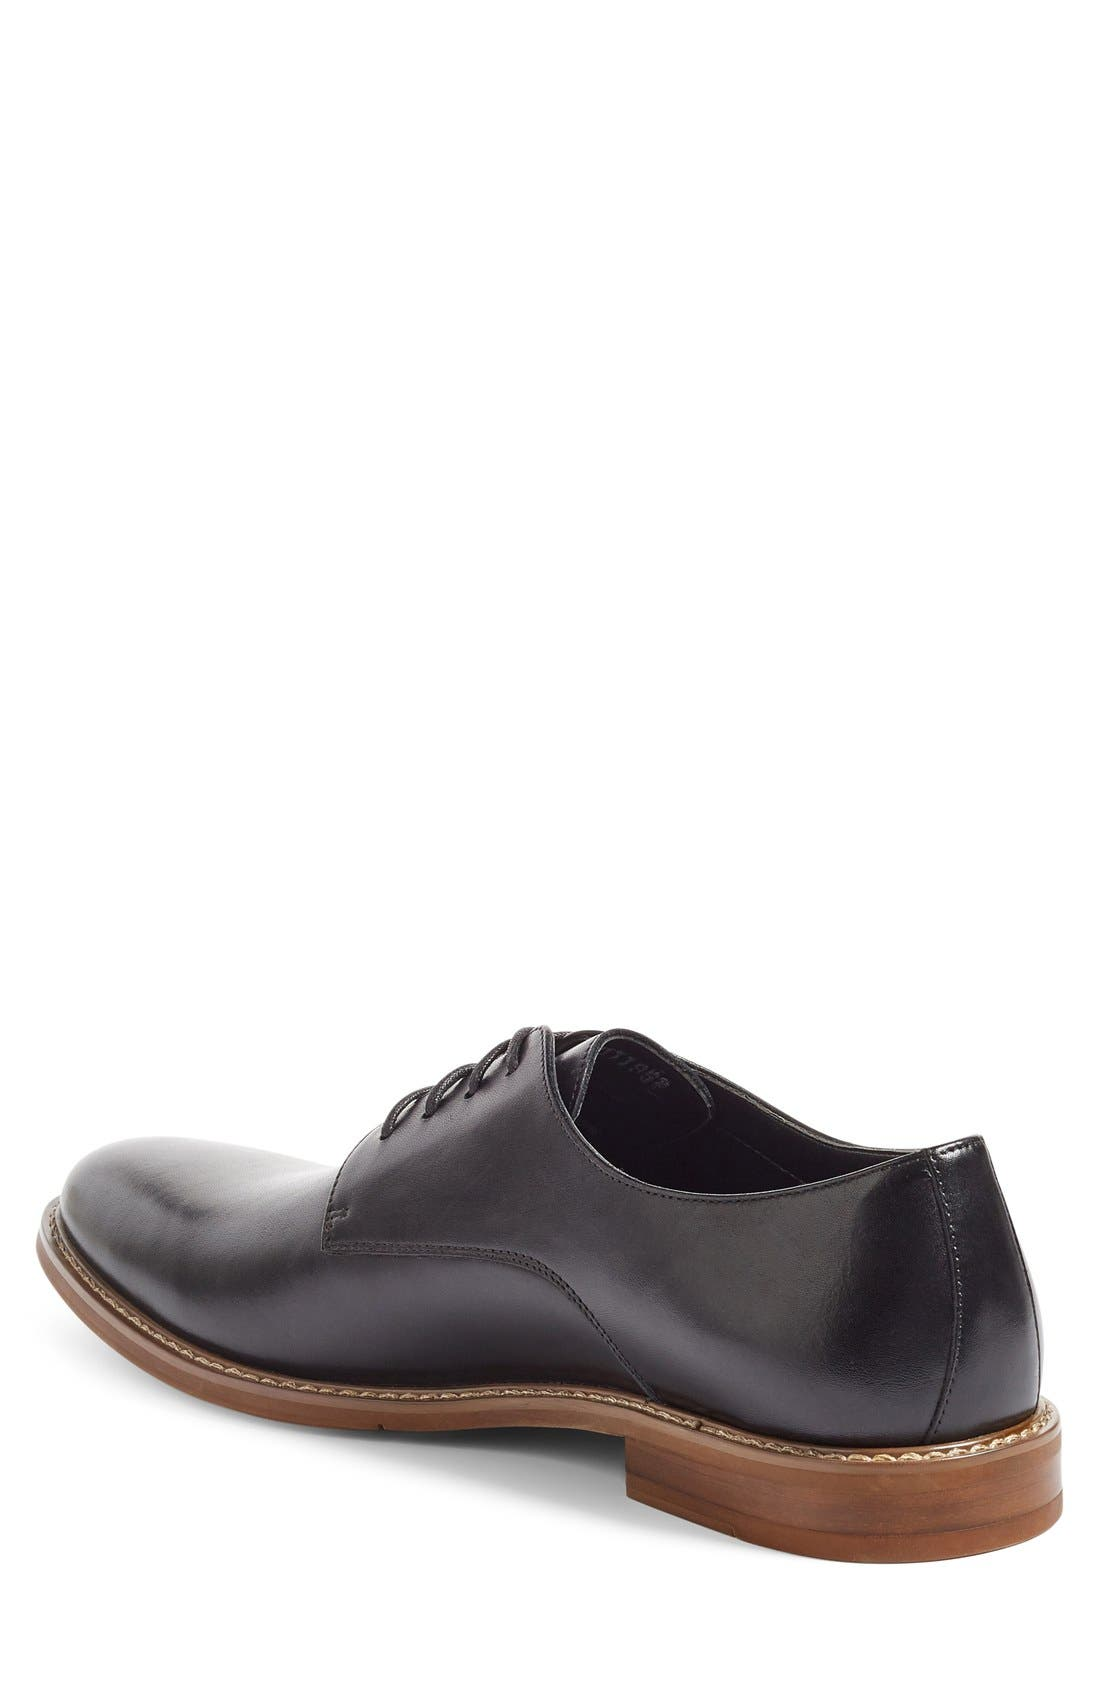 Everett Plain Toe Derby,                             Alternate thumbnail 3, color,                             BLACK LEATHER